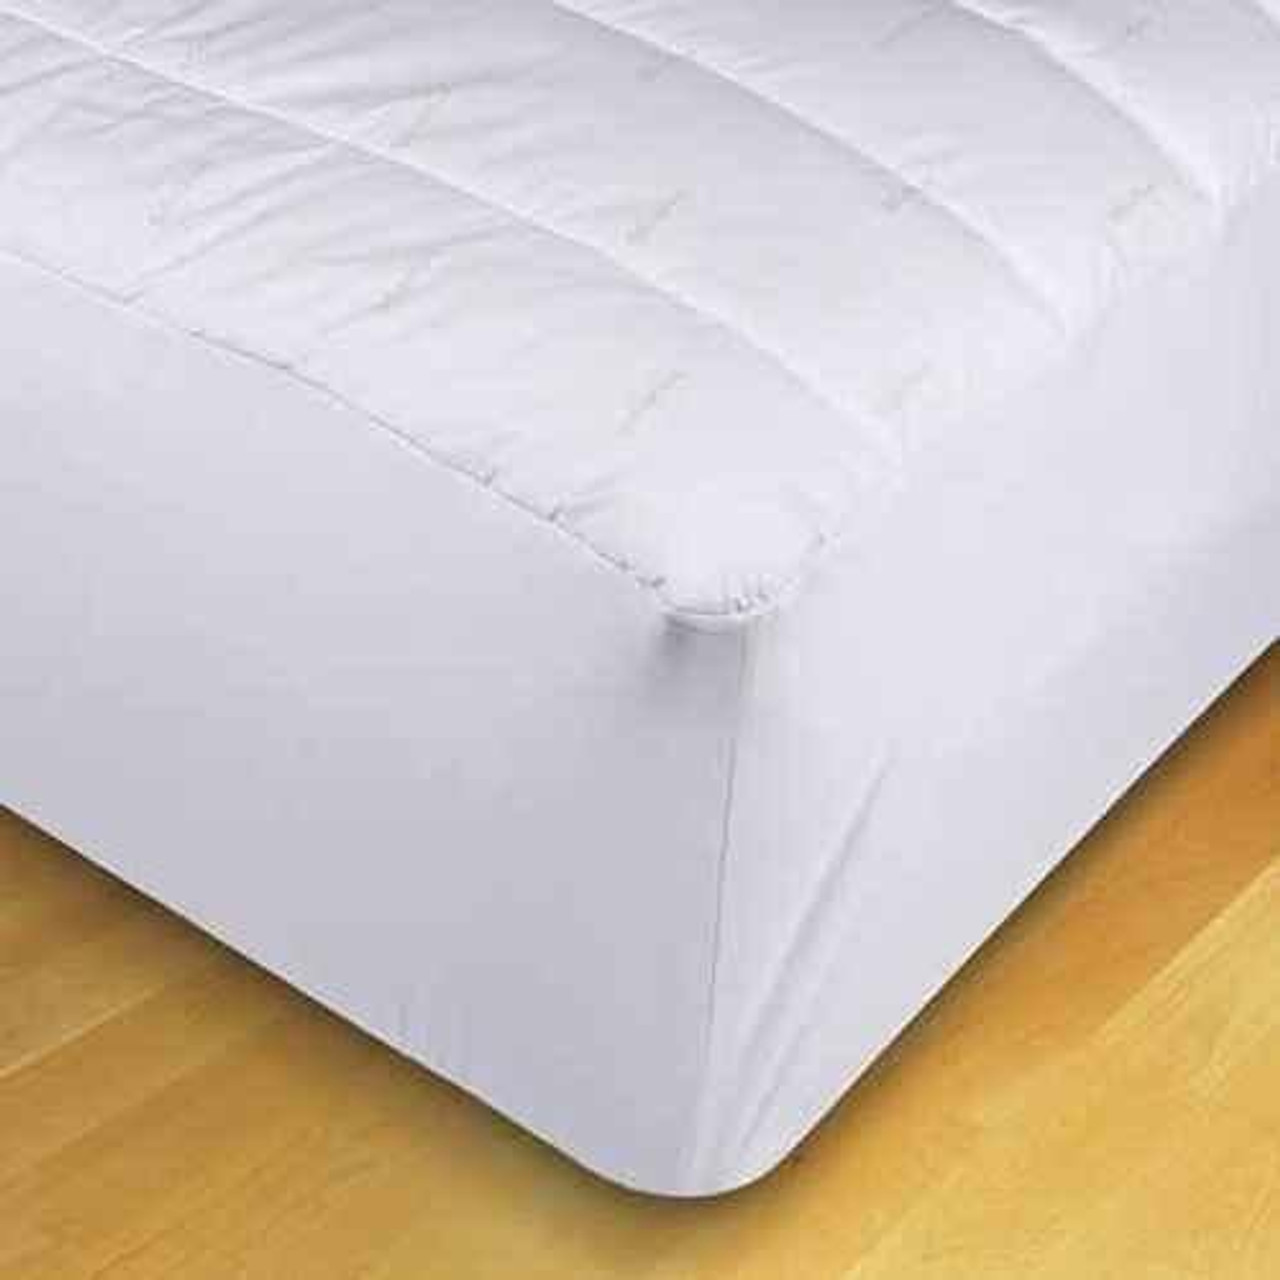 WestPoint/Martex Westpoint or Martex Ecopure or Fitted Mattress Pad - 20 Fitting or White or 2-4 Per Pack